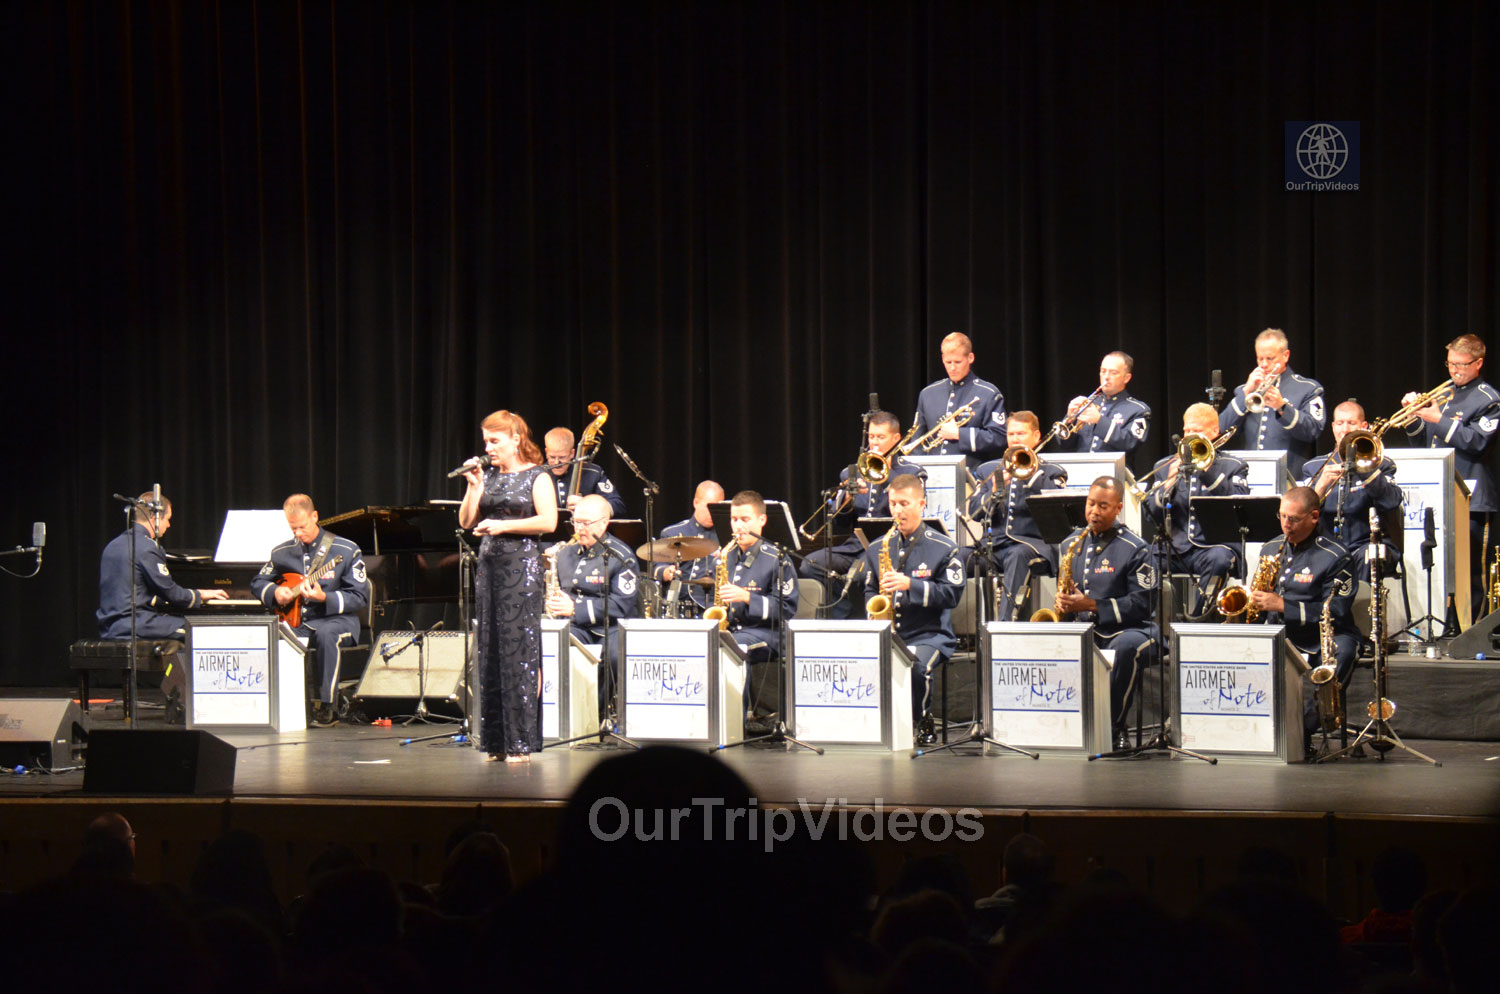 USAF Airmen of Note Live, Hayward, CA, USA - Picture 22 of 25